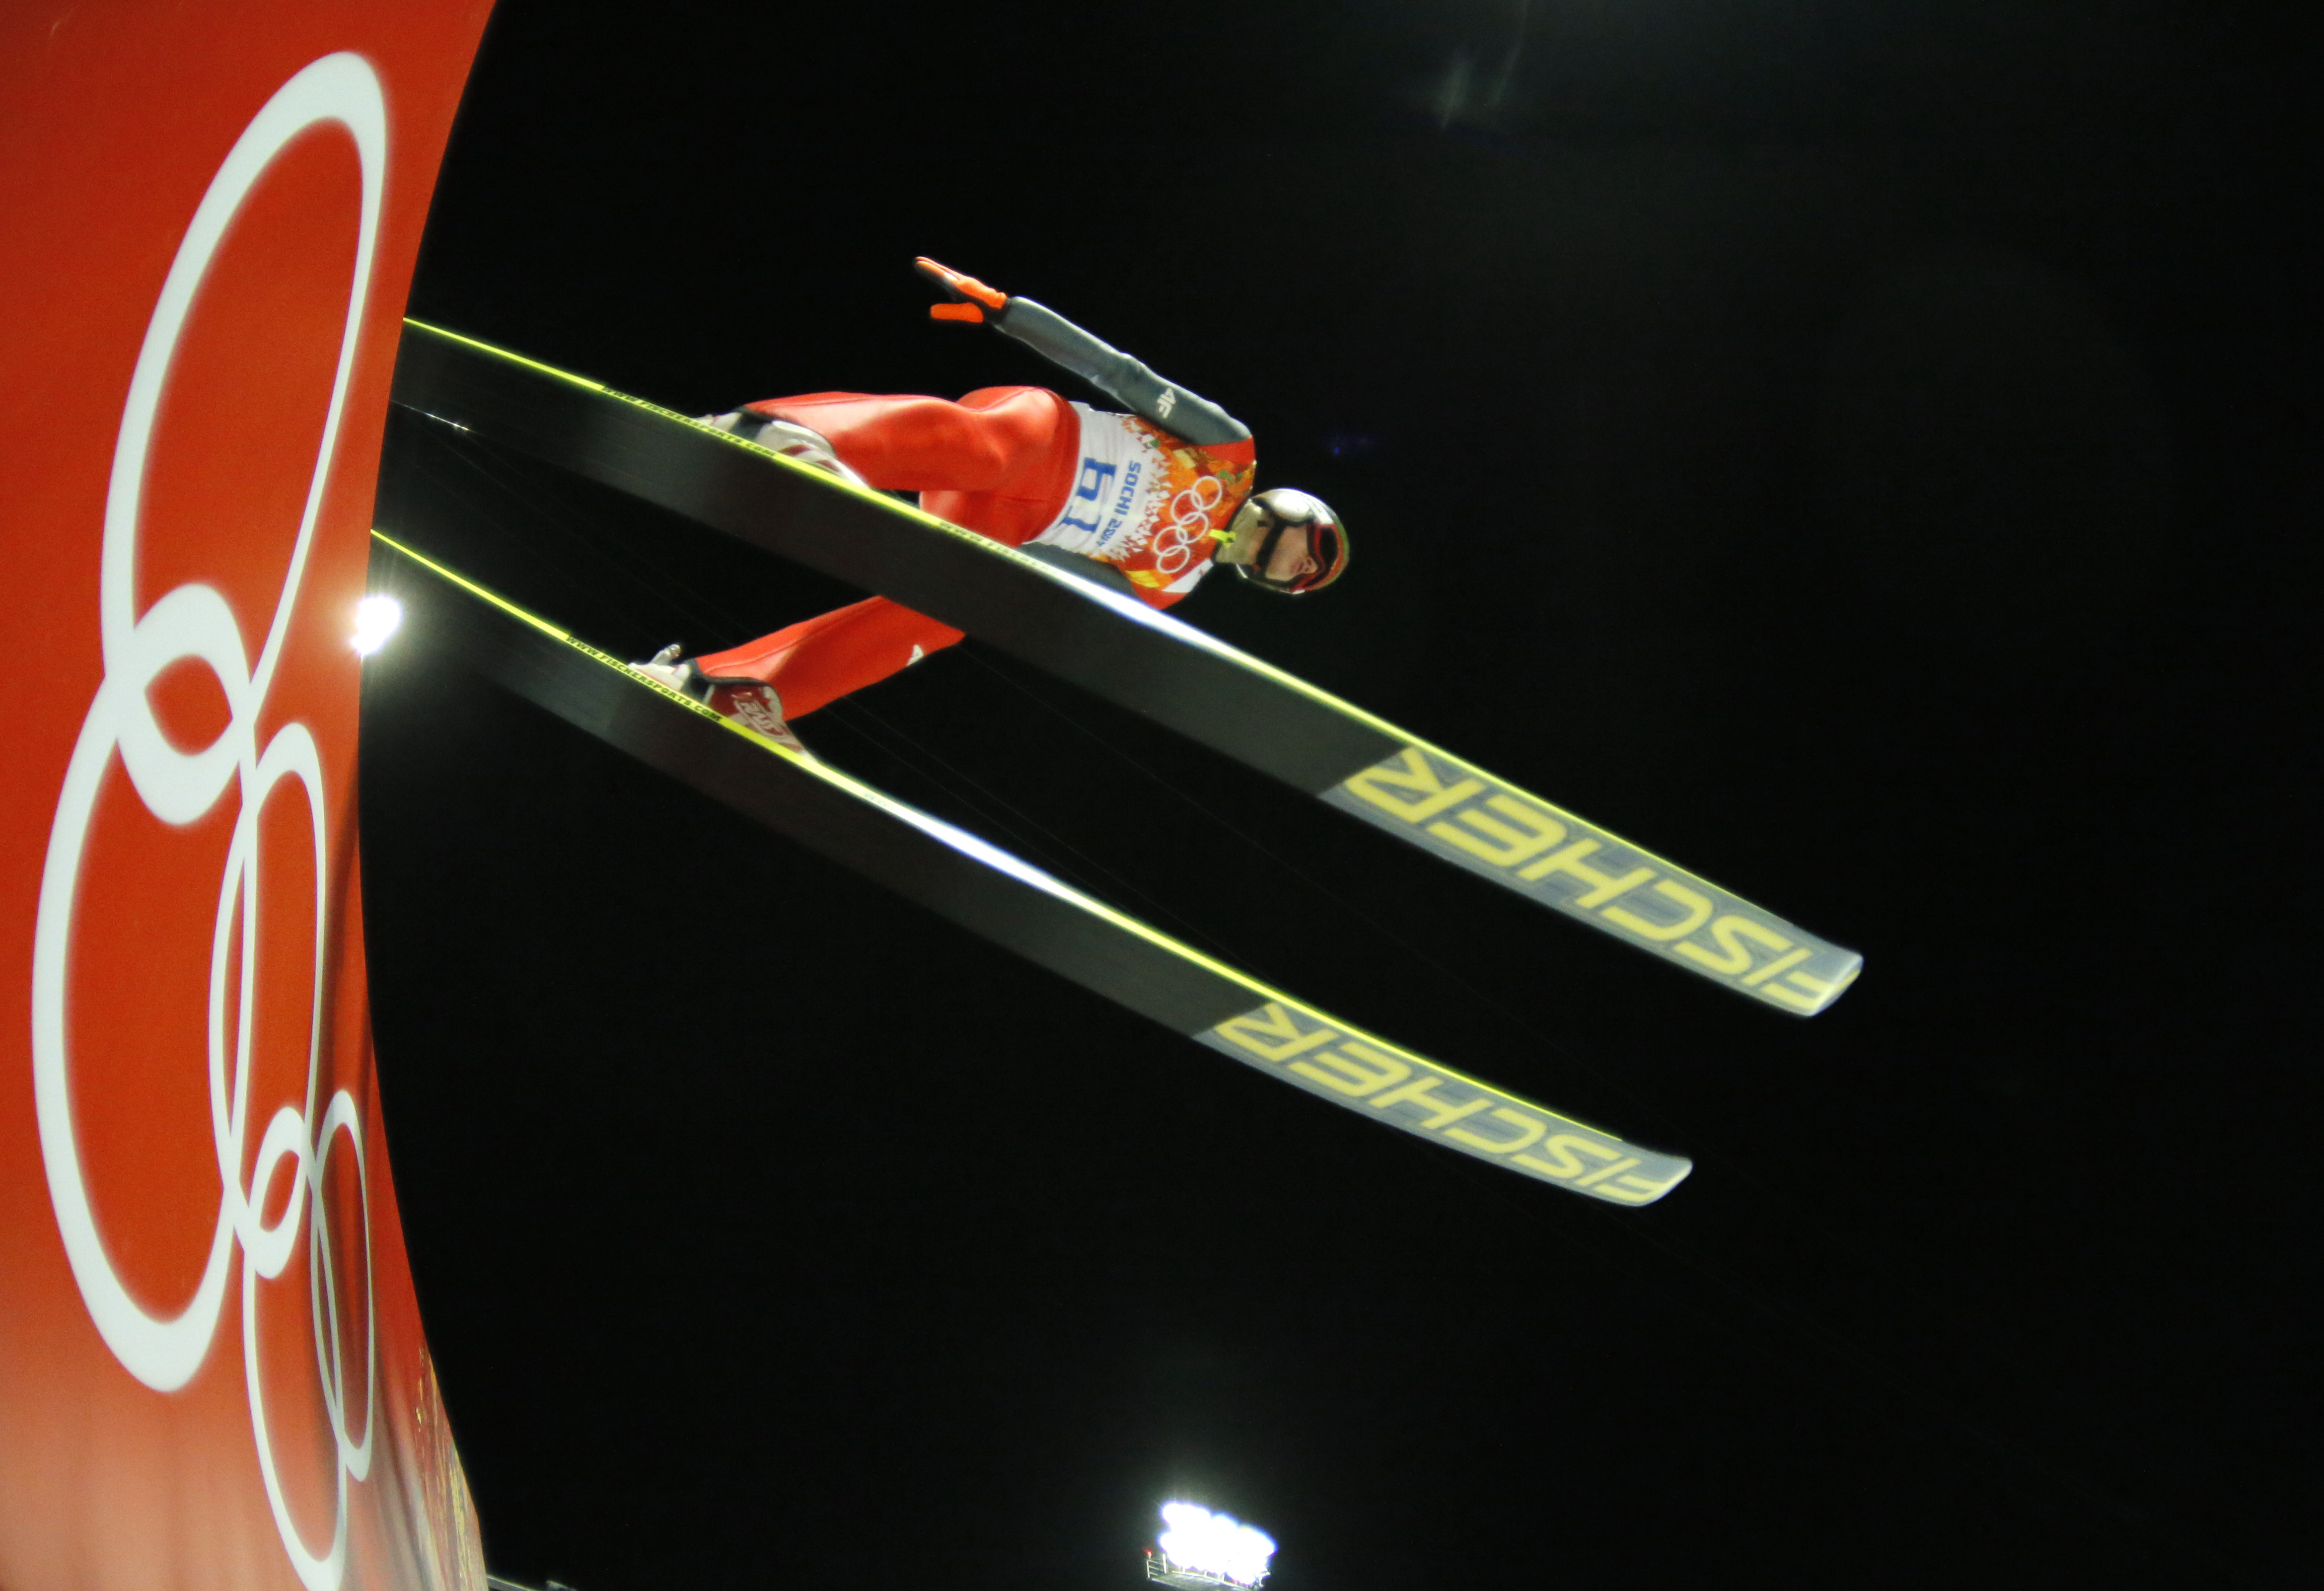 In this photo taken with a fisheye lens Poland's Kamil Stoch makes his trial jump during the ski jumping large hill qualification at the 2014 Winter Olympics, Friday, Feb. 14, 2014, in Krasnaya Polyana, Russia. (AP Photo/Dmitry Lovetsky)